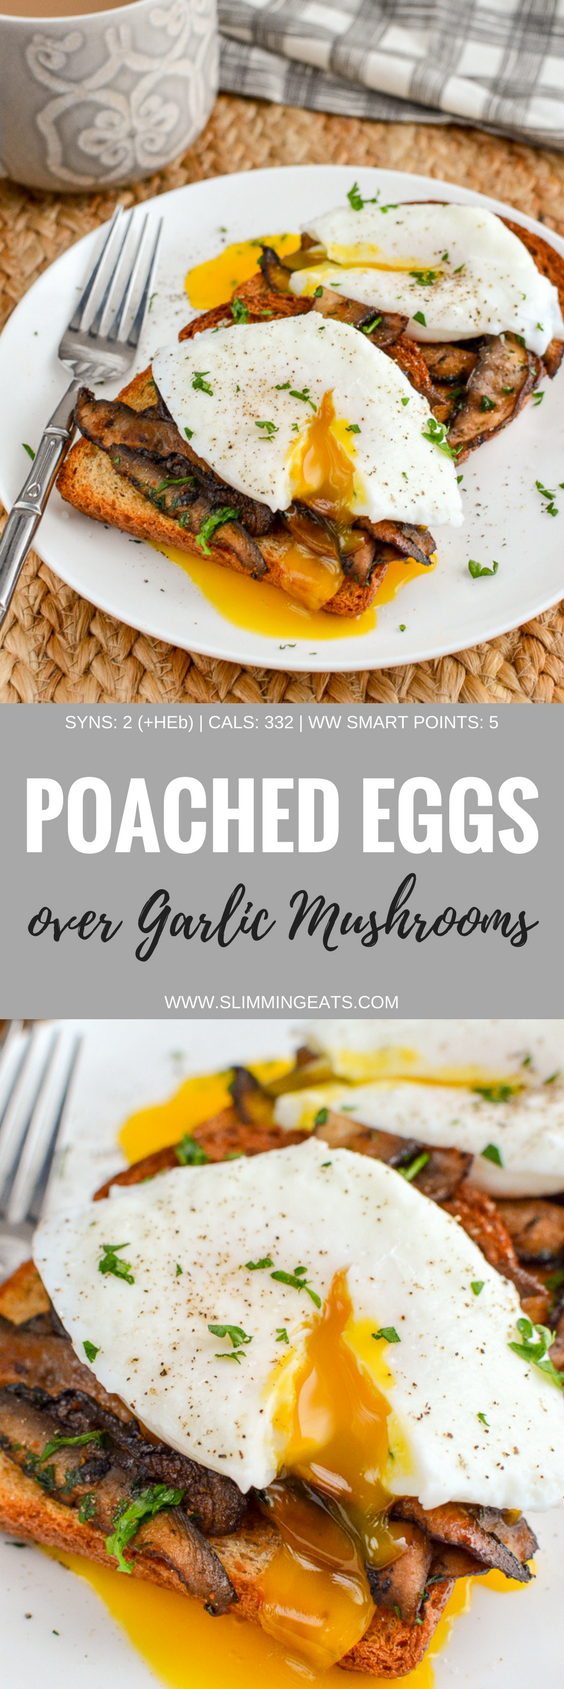 pinterest pin - poached eggs over garlic mushrooms